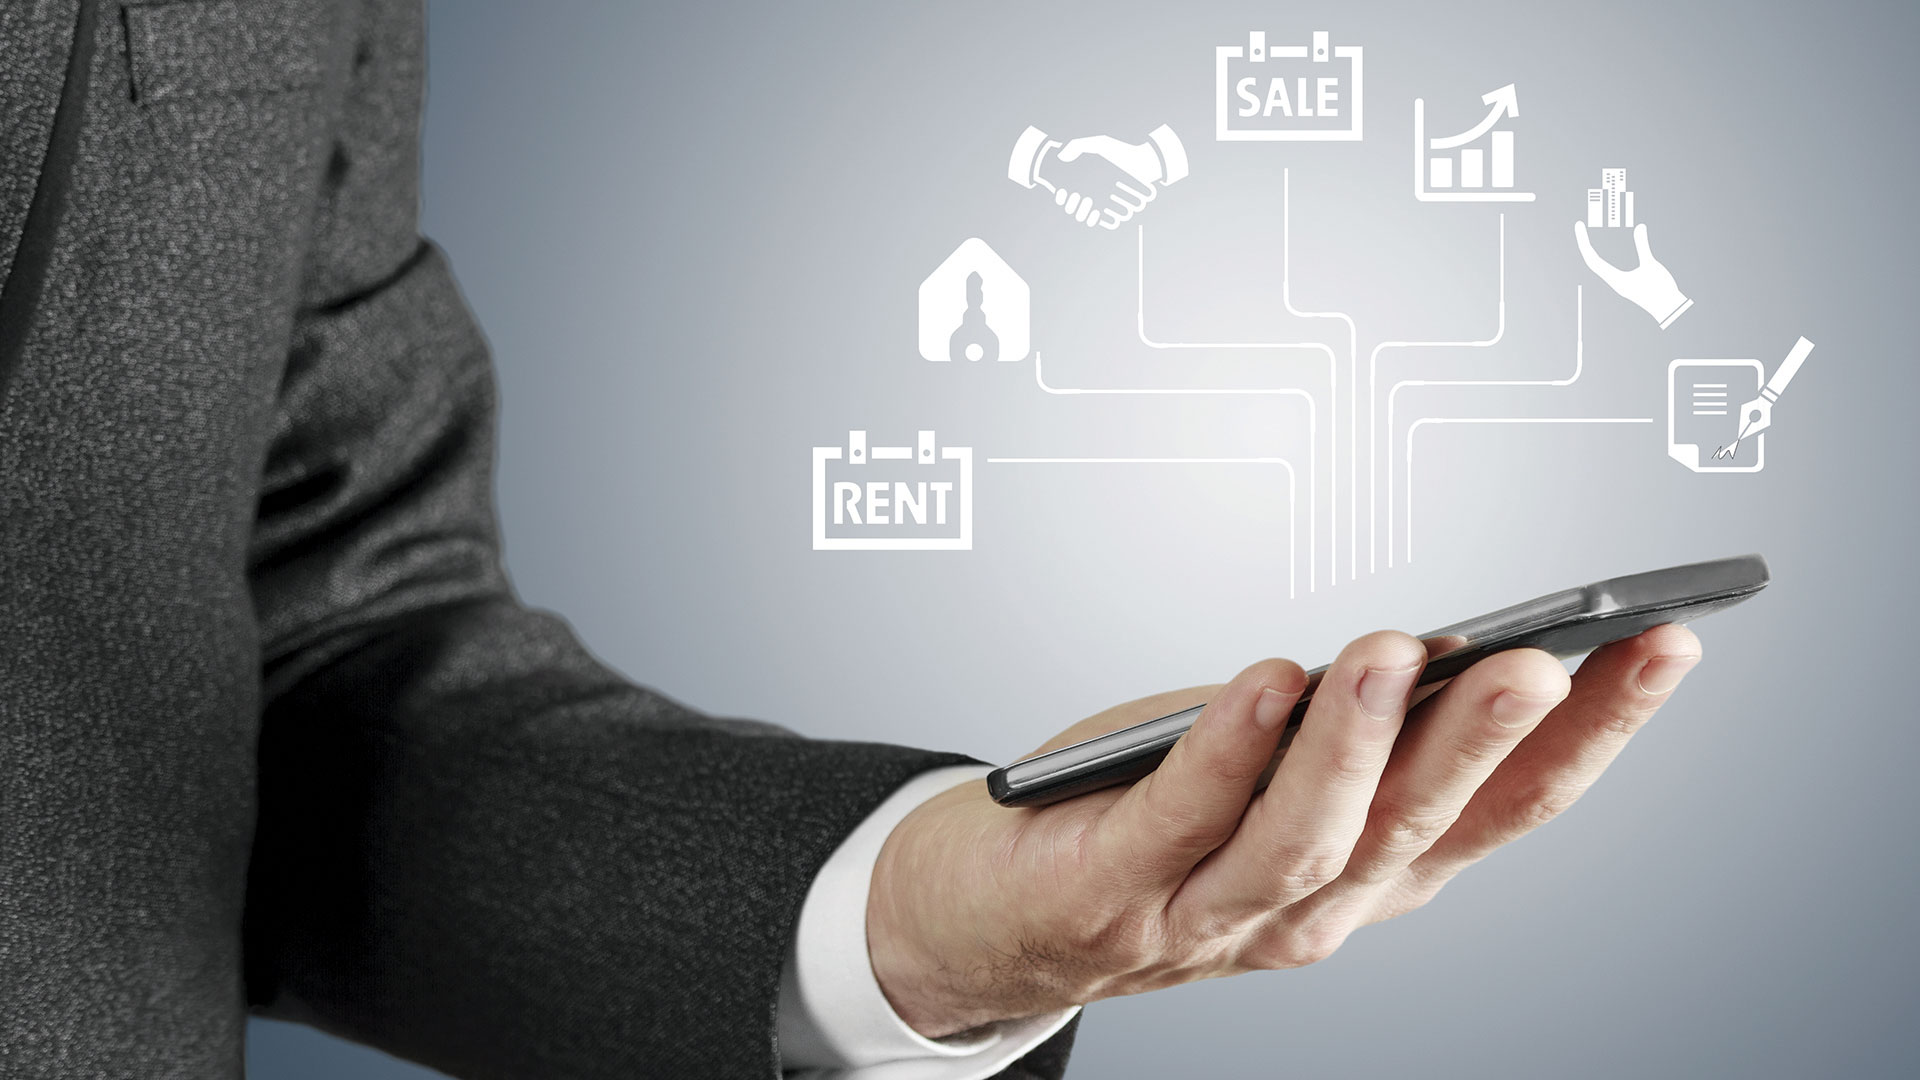 Technology will accelerate online property purchase in 2017.